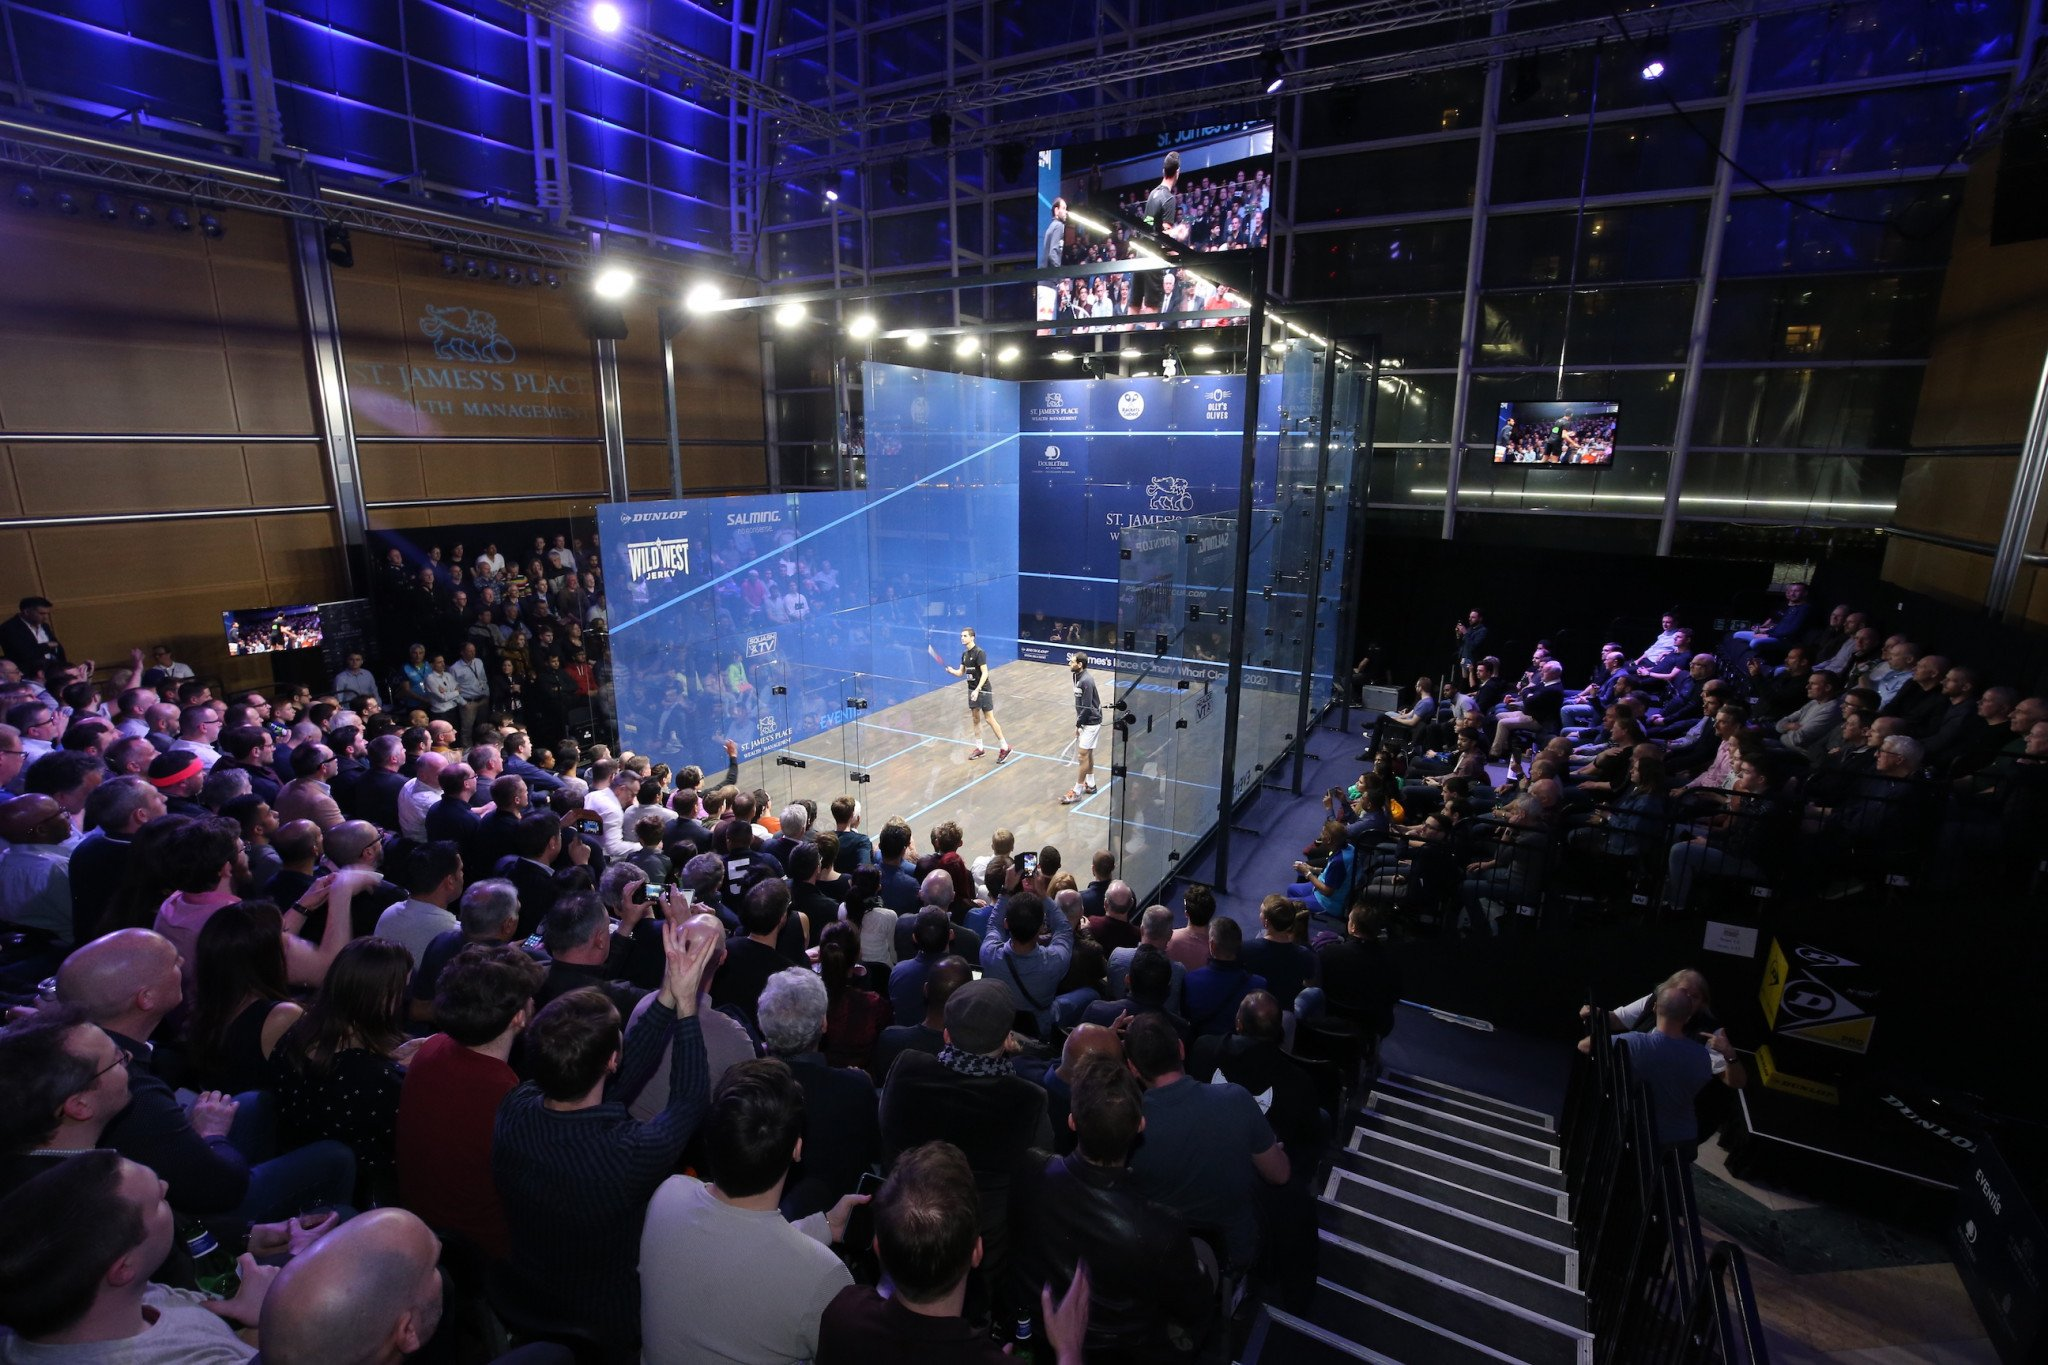 The Canary Wharf Classic, a PSA Tour Gold event, has been confirmed on the calendar for 2021 as one of two top events to take place in England ©PSA